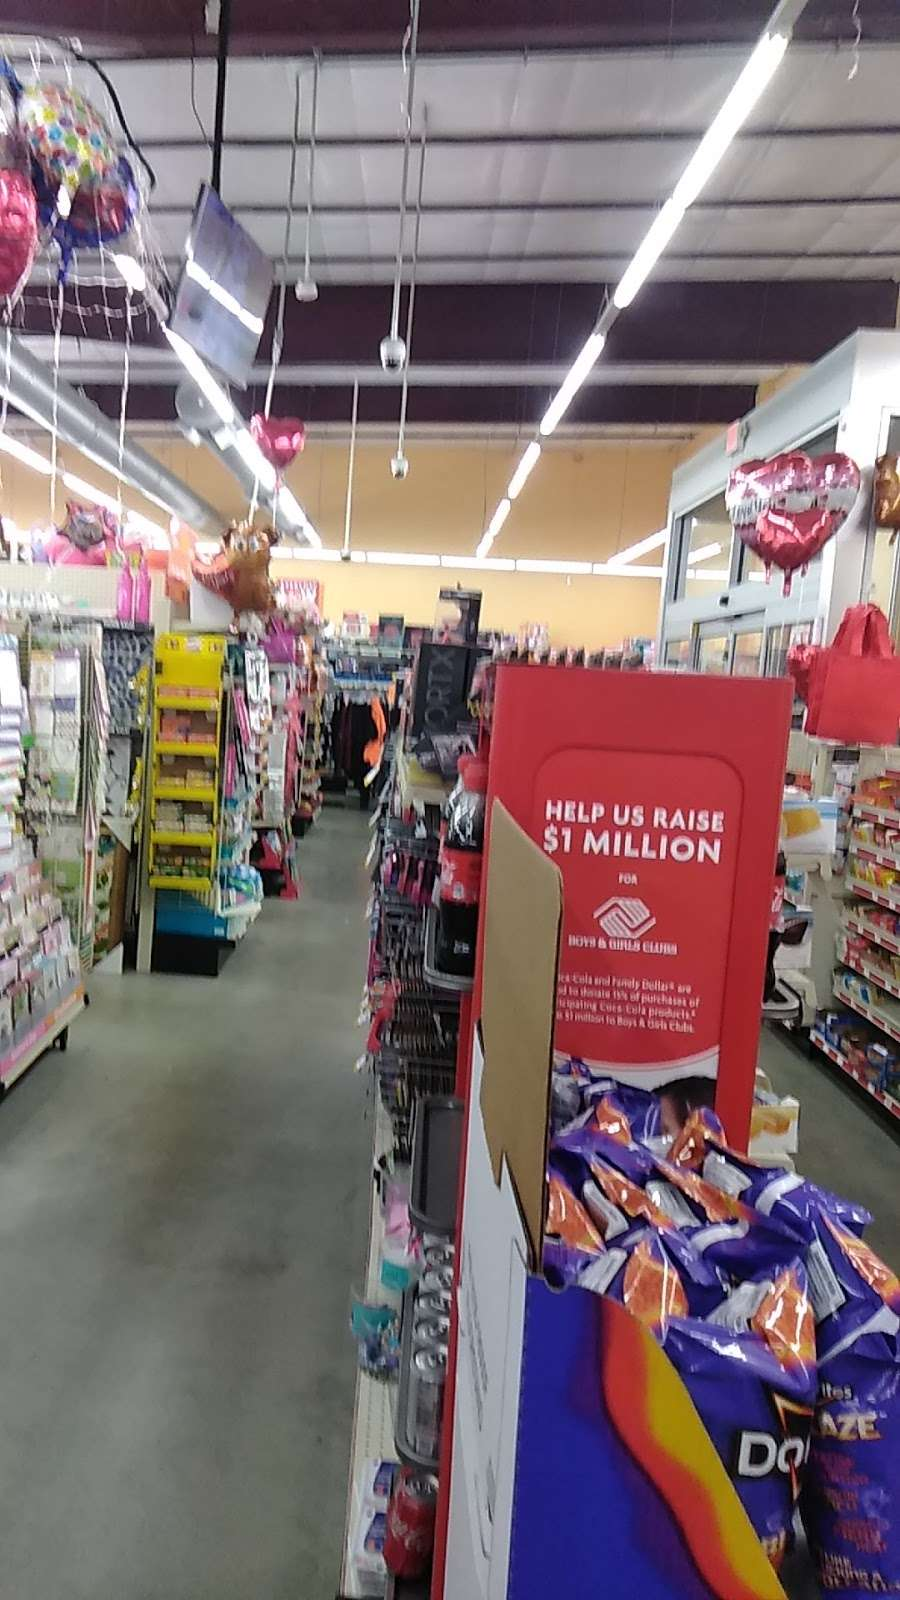 Family Dollar - supermarket  | Photo 3 of 5 | Address: 14 S West Blvd, Newfield, NJ 08344, USA | Phone: (856) 457-6130